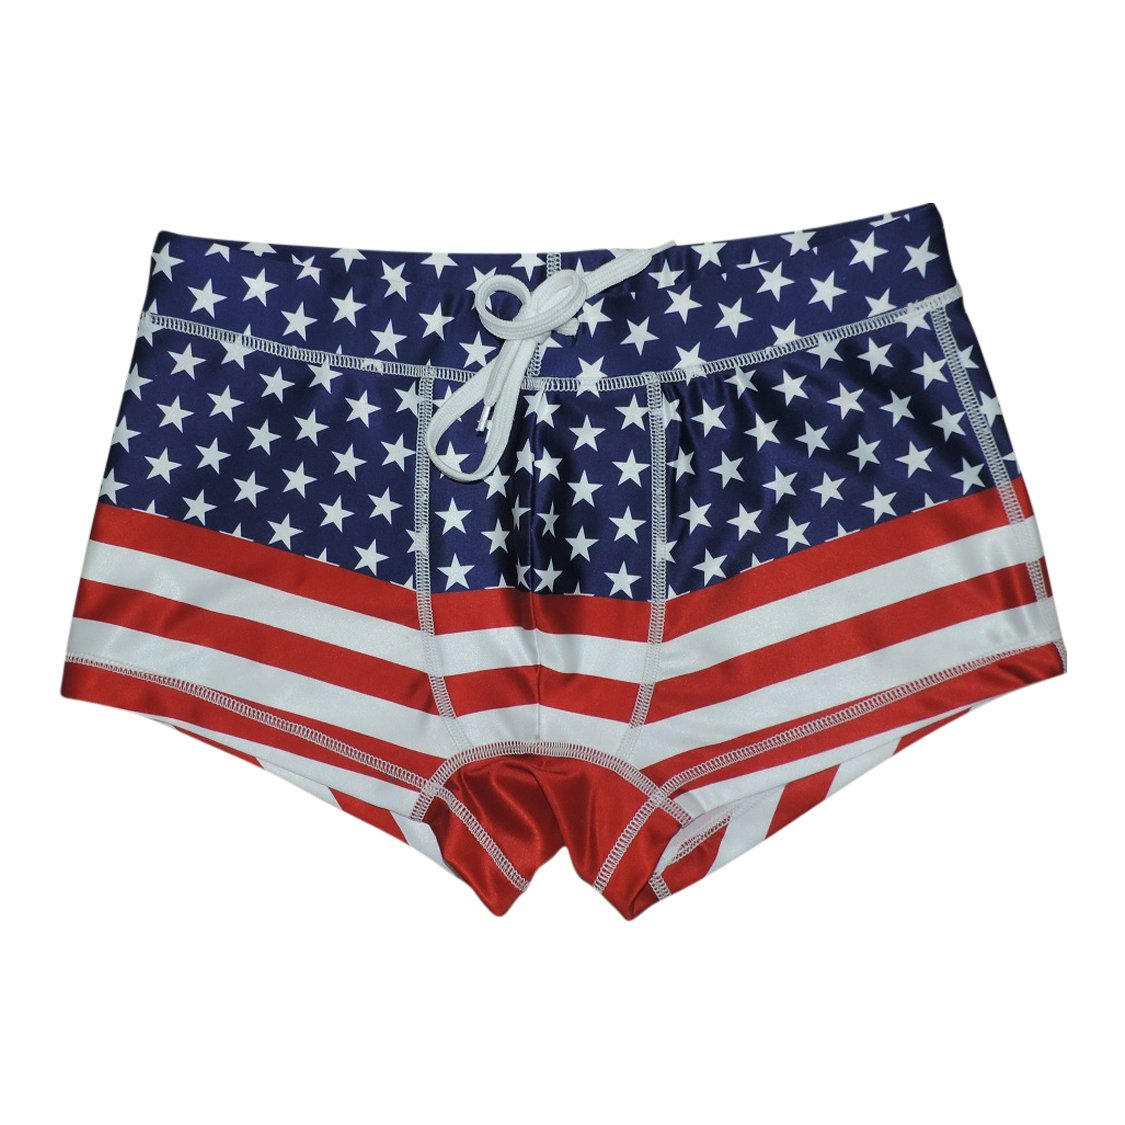 5th Industry 20+ Styles - Mens Swim Brief Square Leg Swimsuit - American Flag - Medium